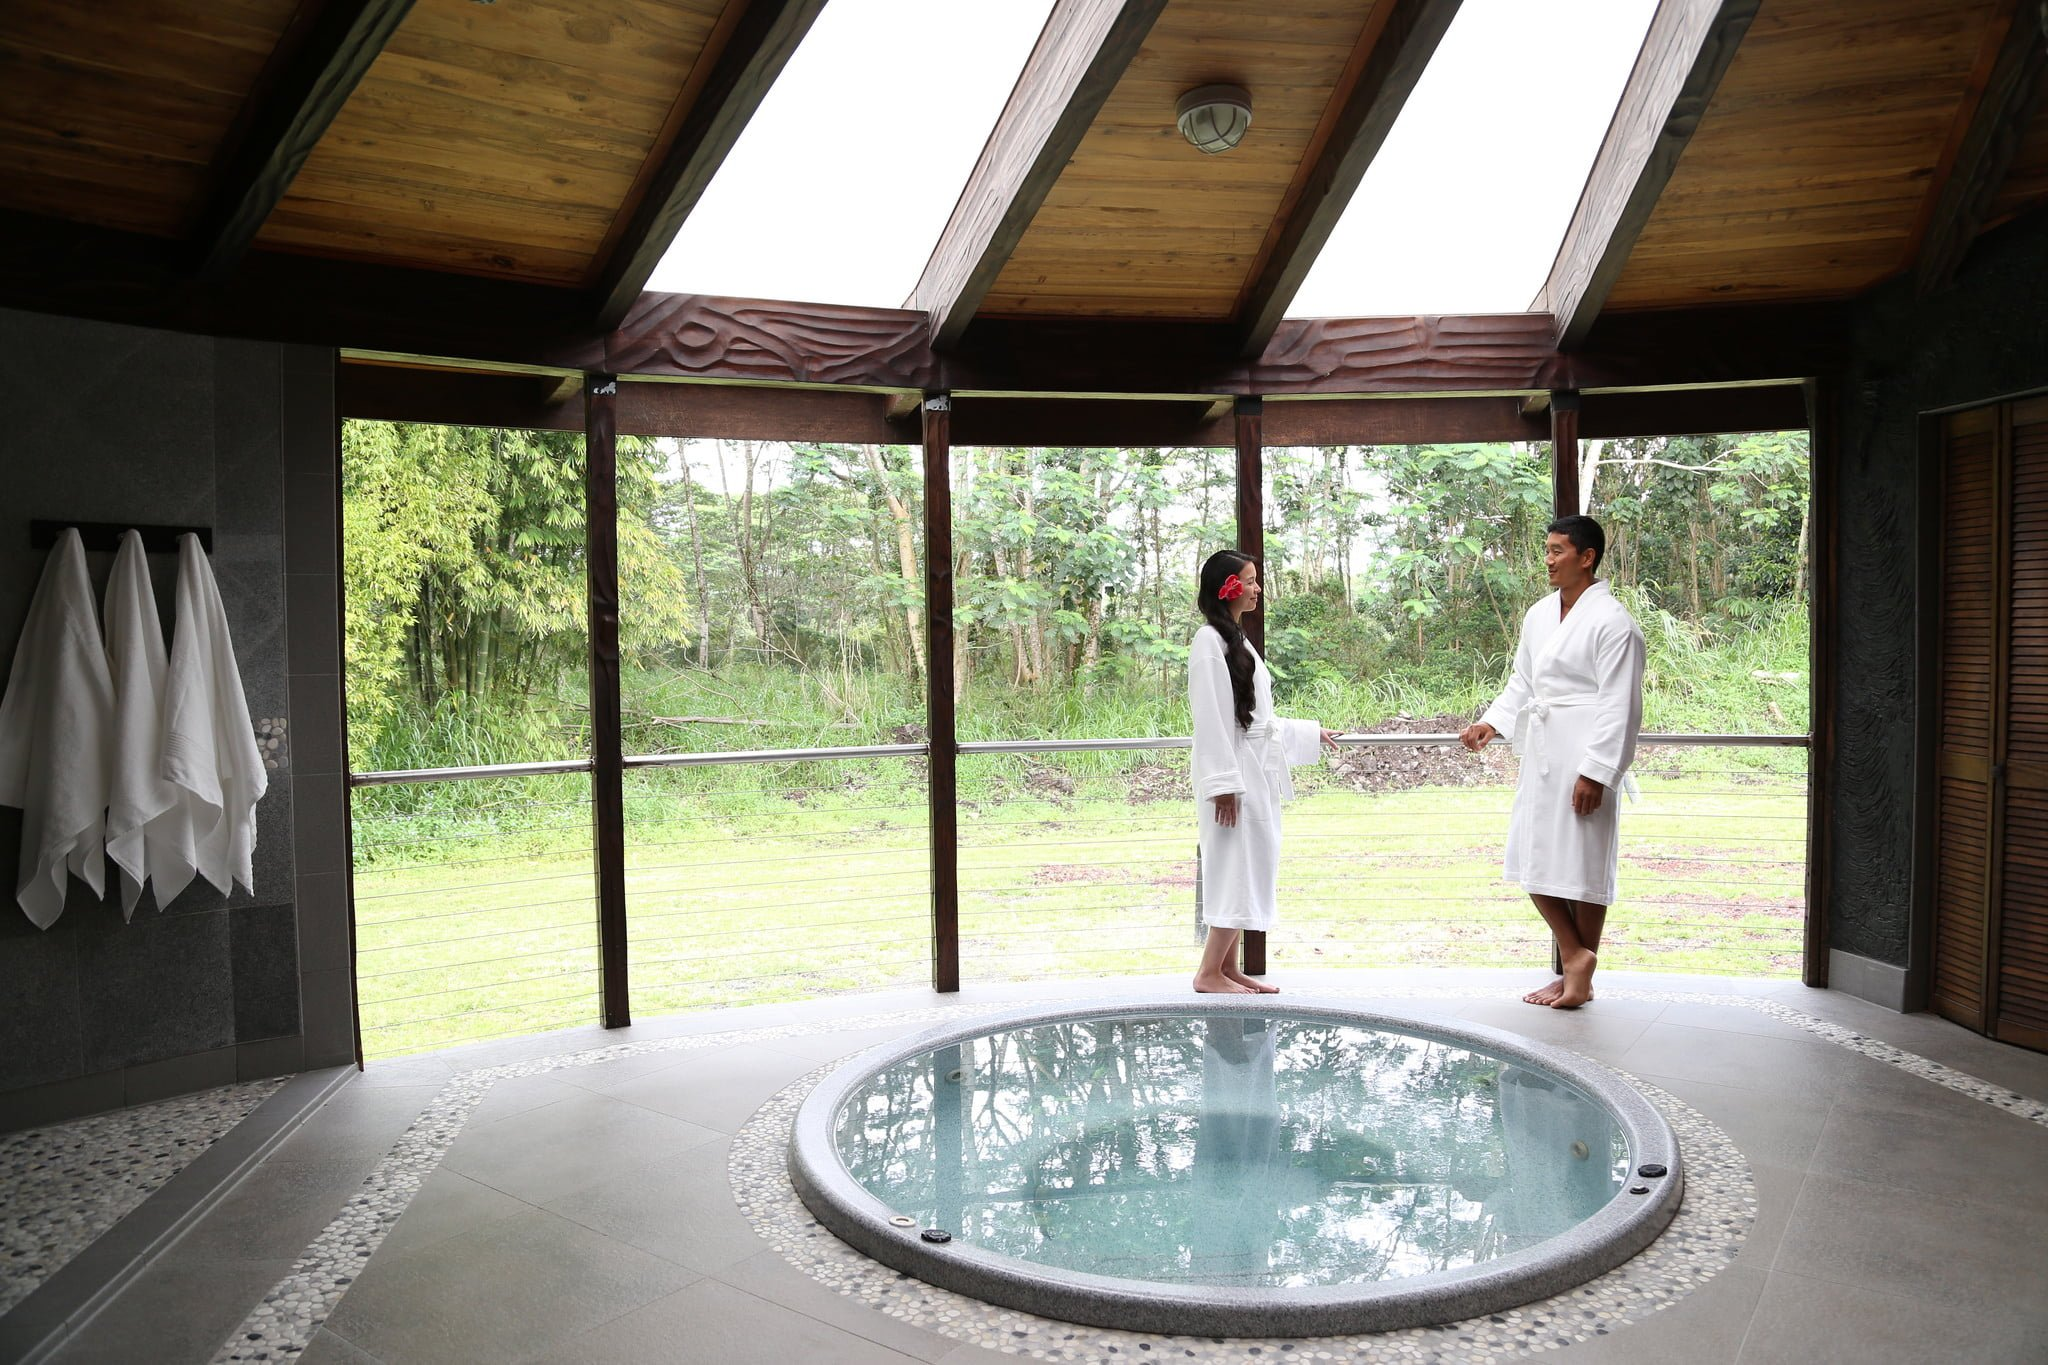 Relax in the Spa